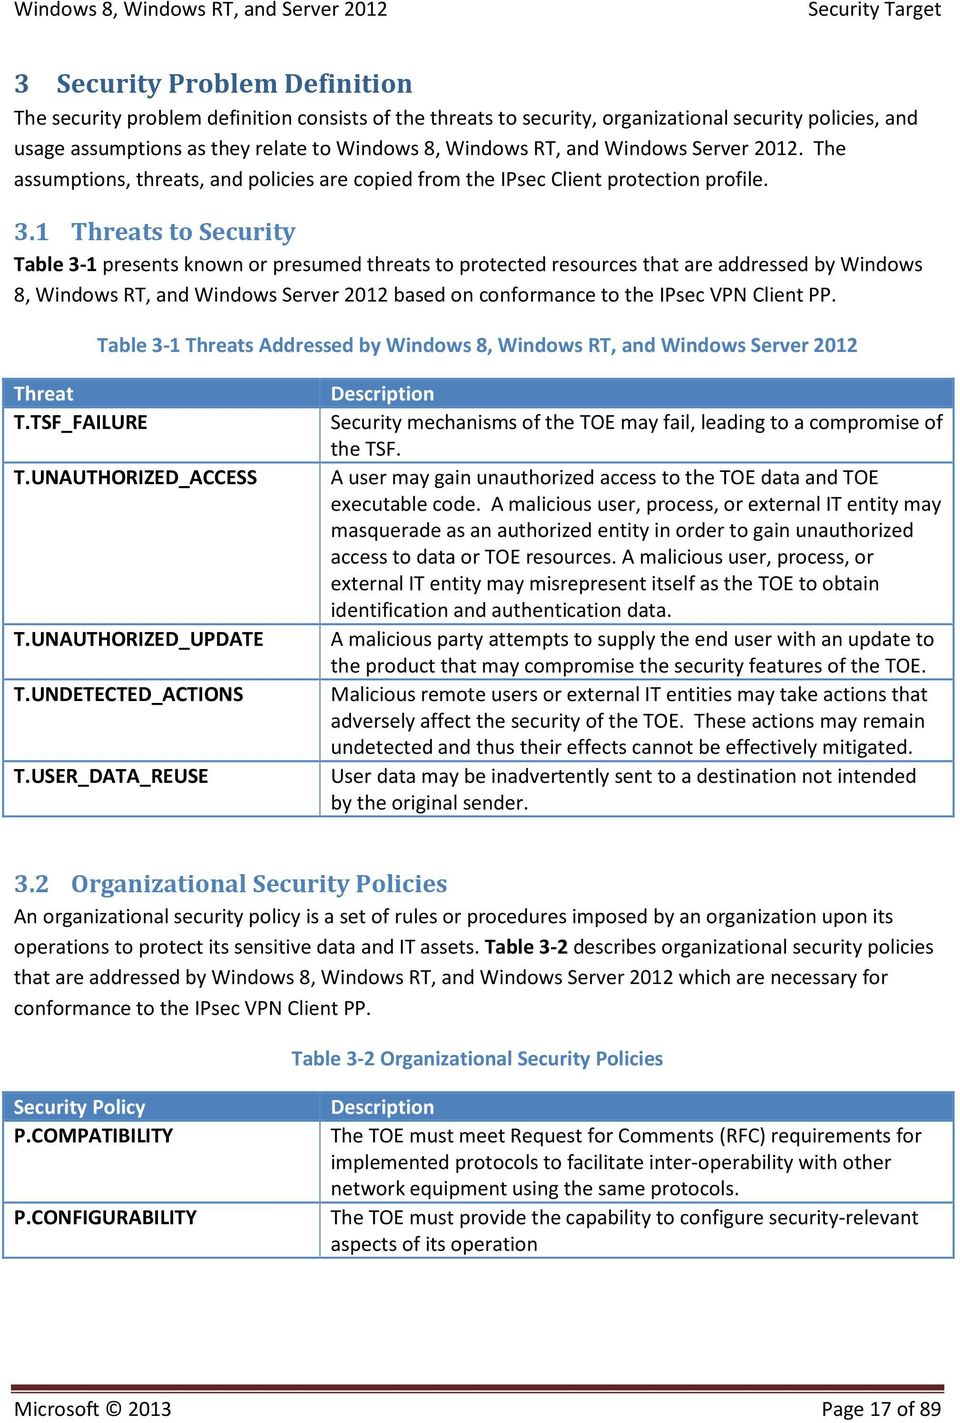 1 Threats to Security Table 3-1 presents known or presumed threats to protected resources that are addressed by Windows 8, Windows RT, and Windows Server 2012 based on conformance to the IPsec VPN